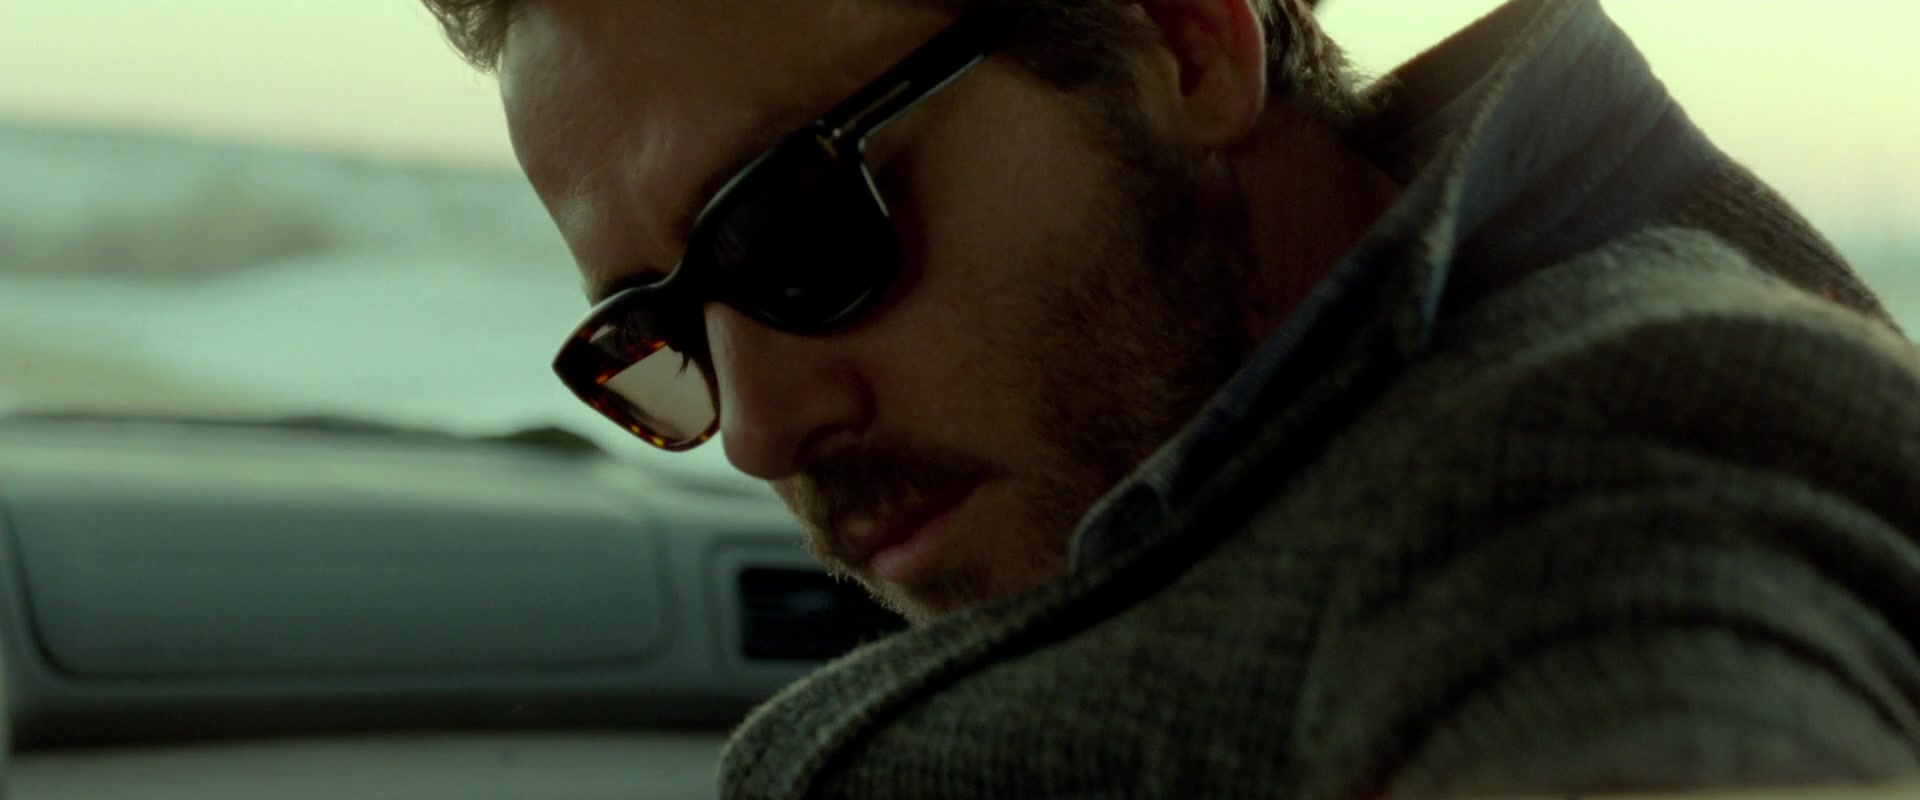 3a1c2e722f Tom Ford Snowdon Sunglasses (FT237) Worn by Ryan Reynolds in Mississippi  Grind (2015)